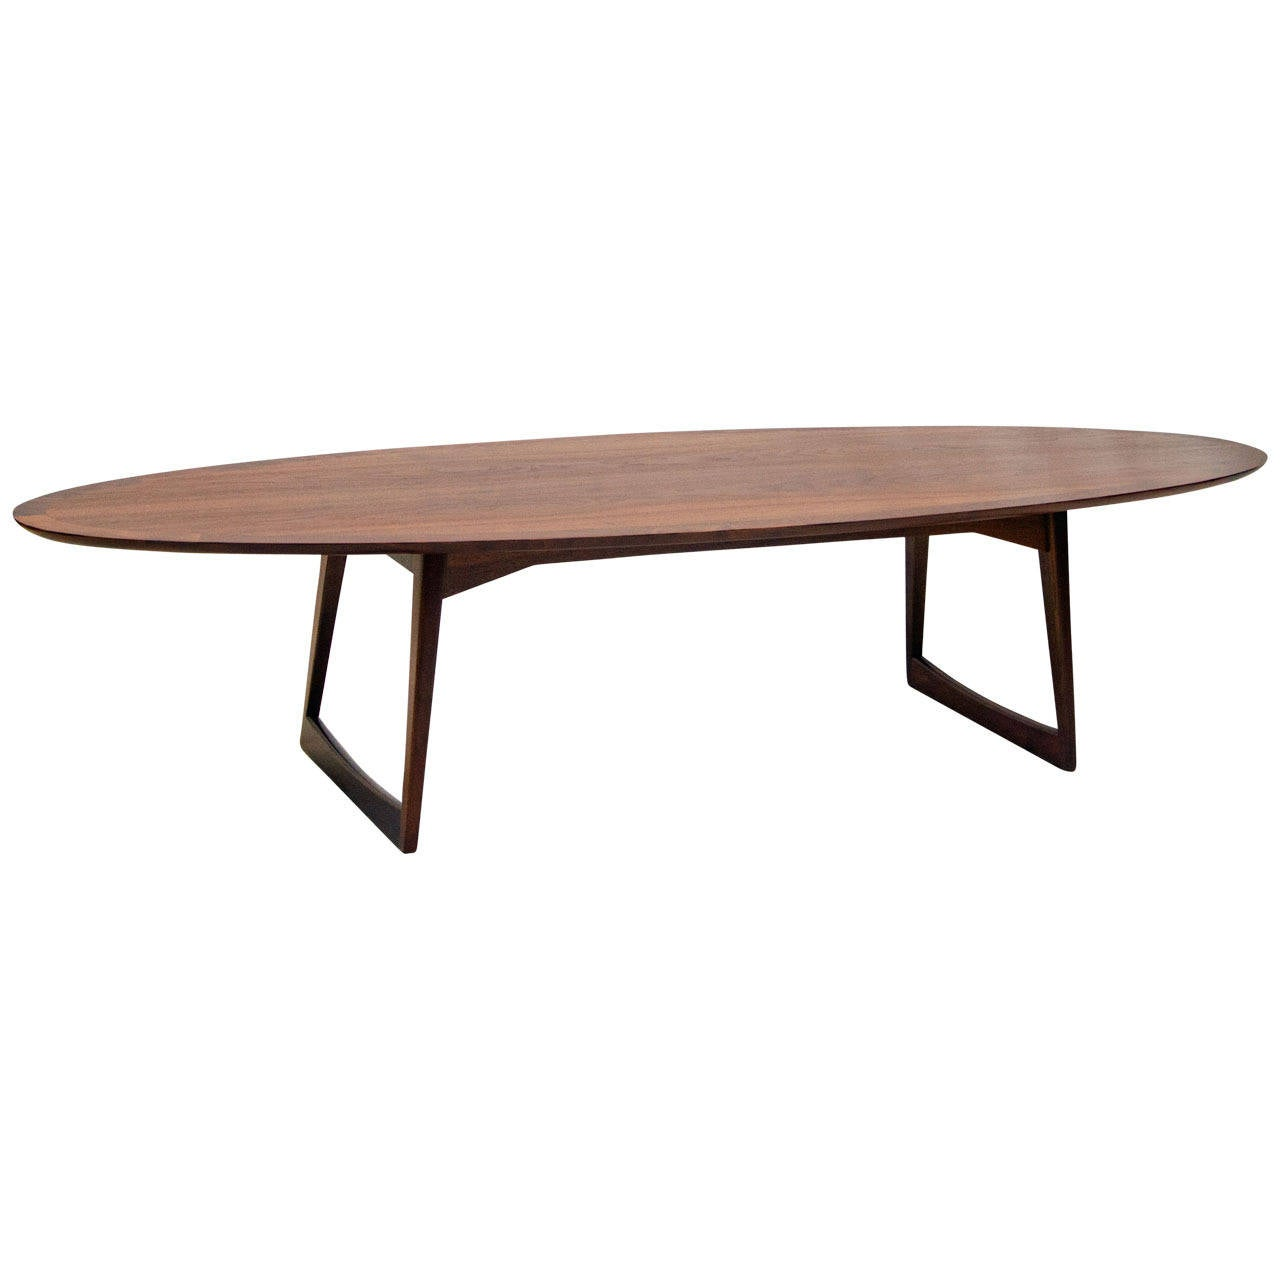 Mid century walnut surfboard coffee table mm moreddi at 1stdibs Mid century coffee tables